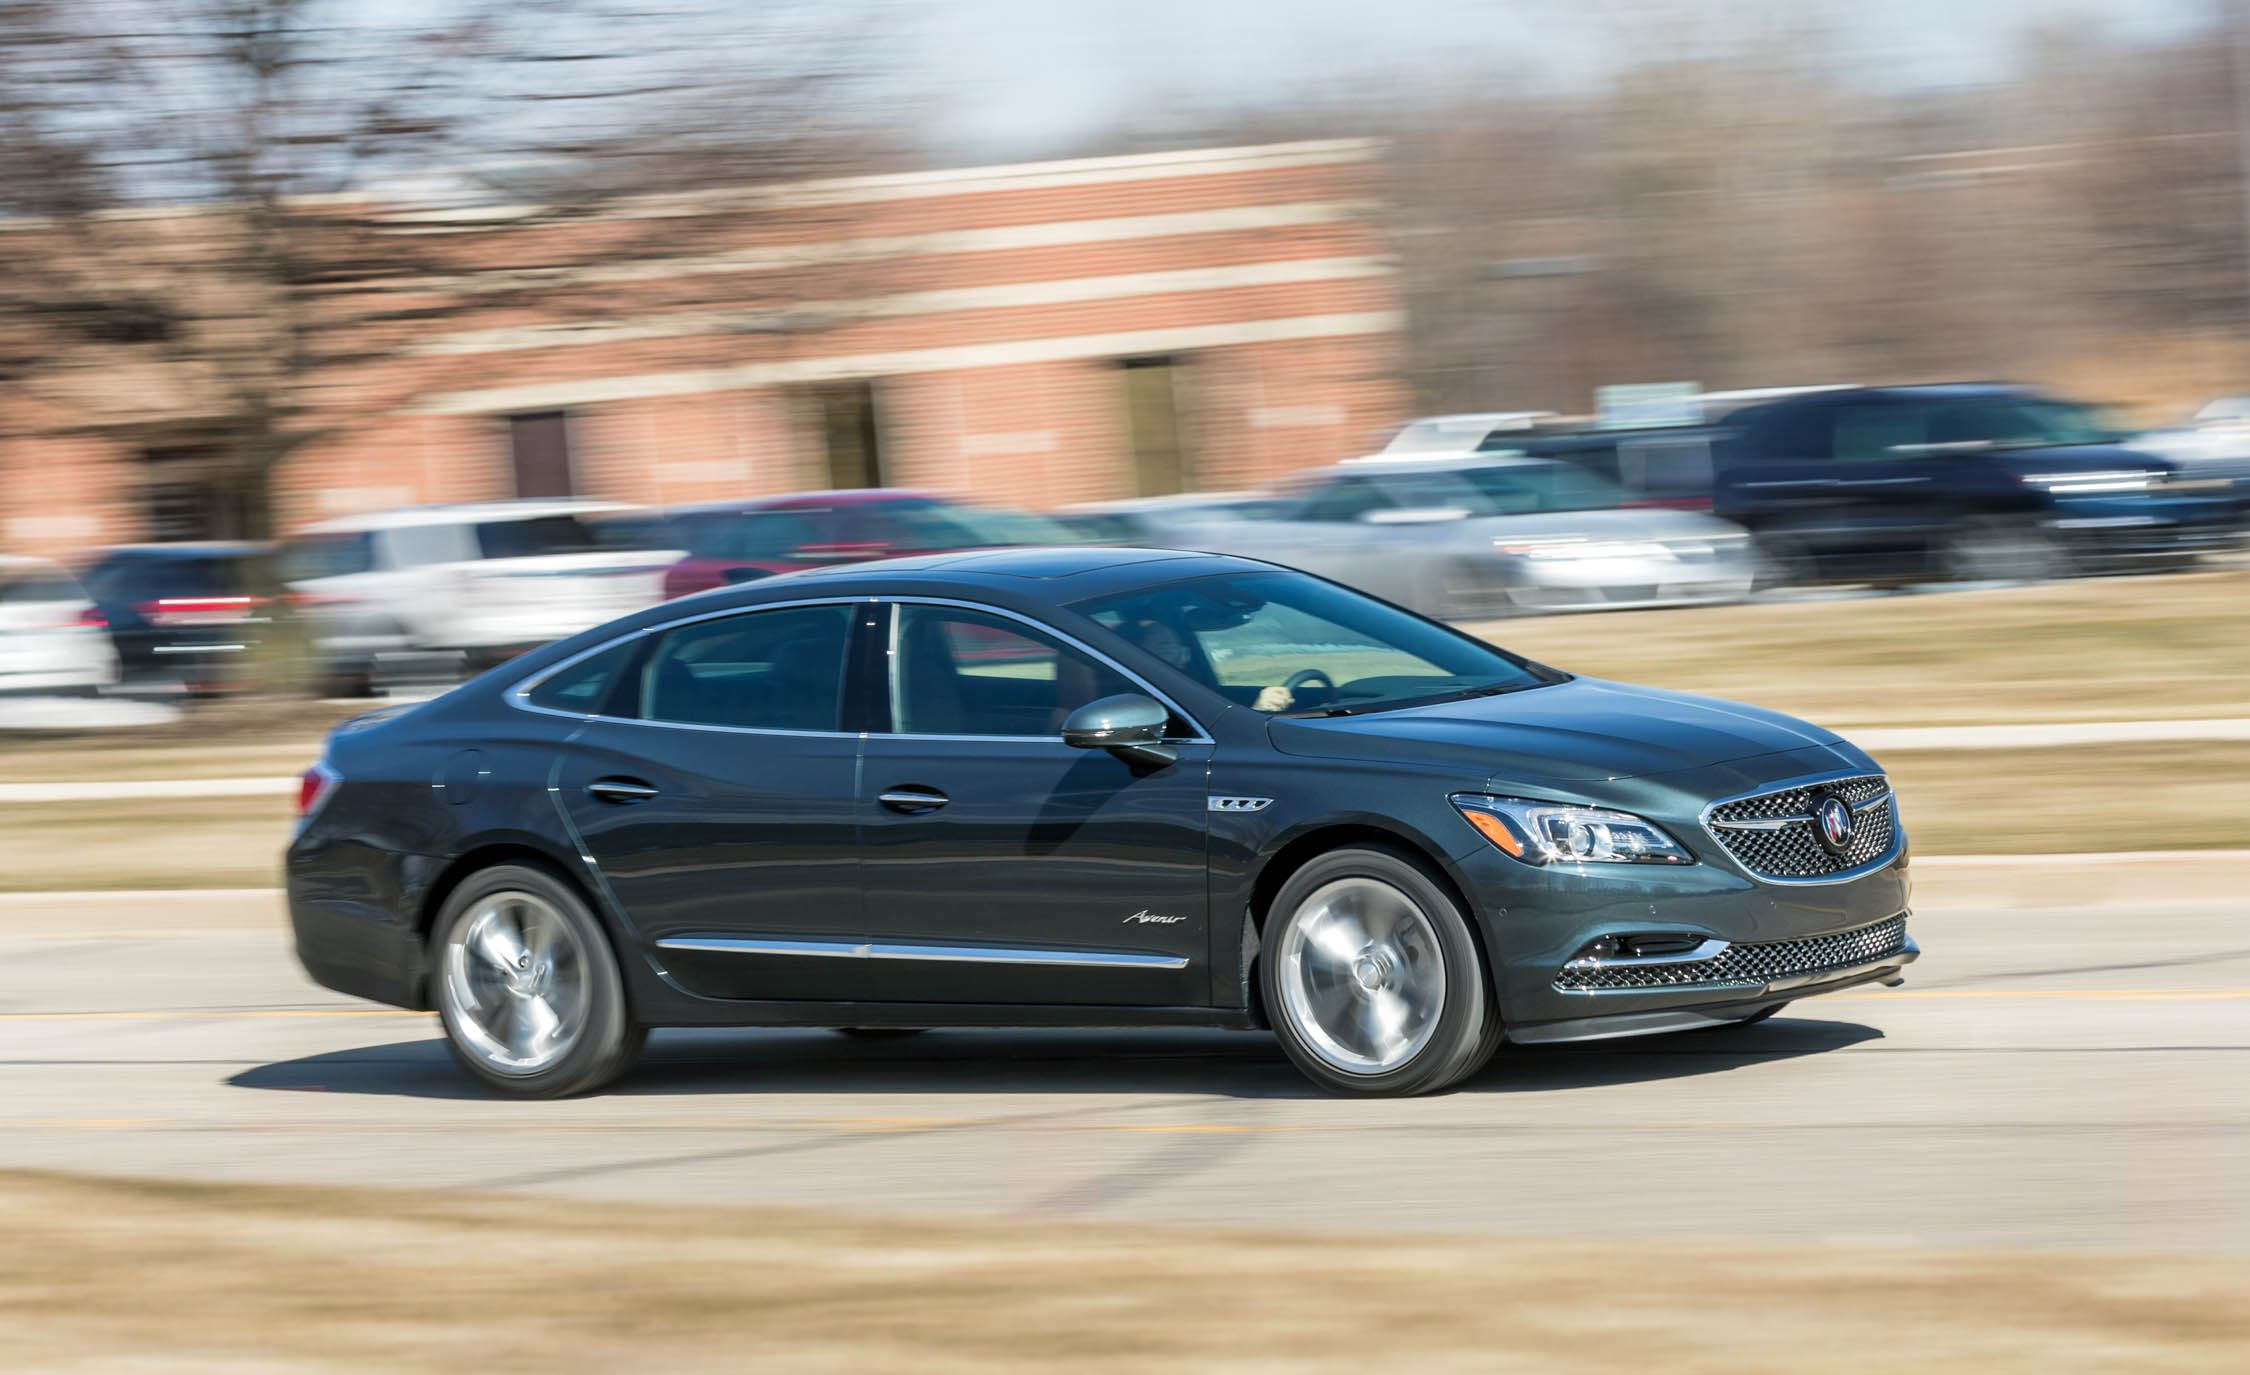 2021 buick lacrosse lease reviews msrp  2021 buick